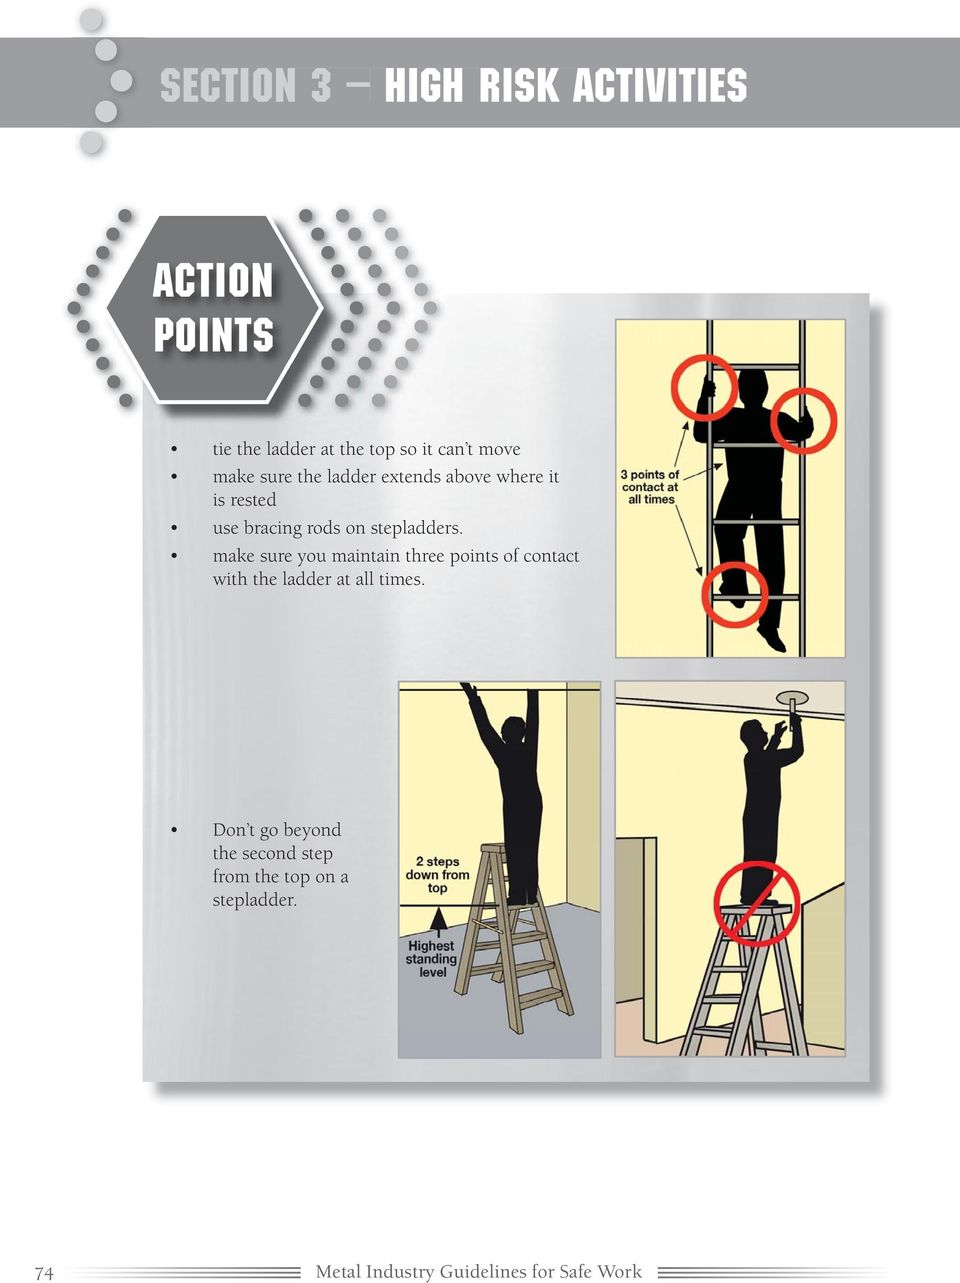 make sure you maintain three points of contact with the ladder at all times.